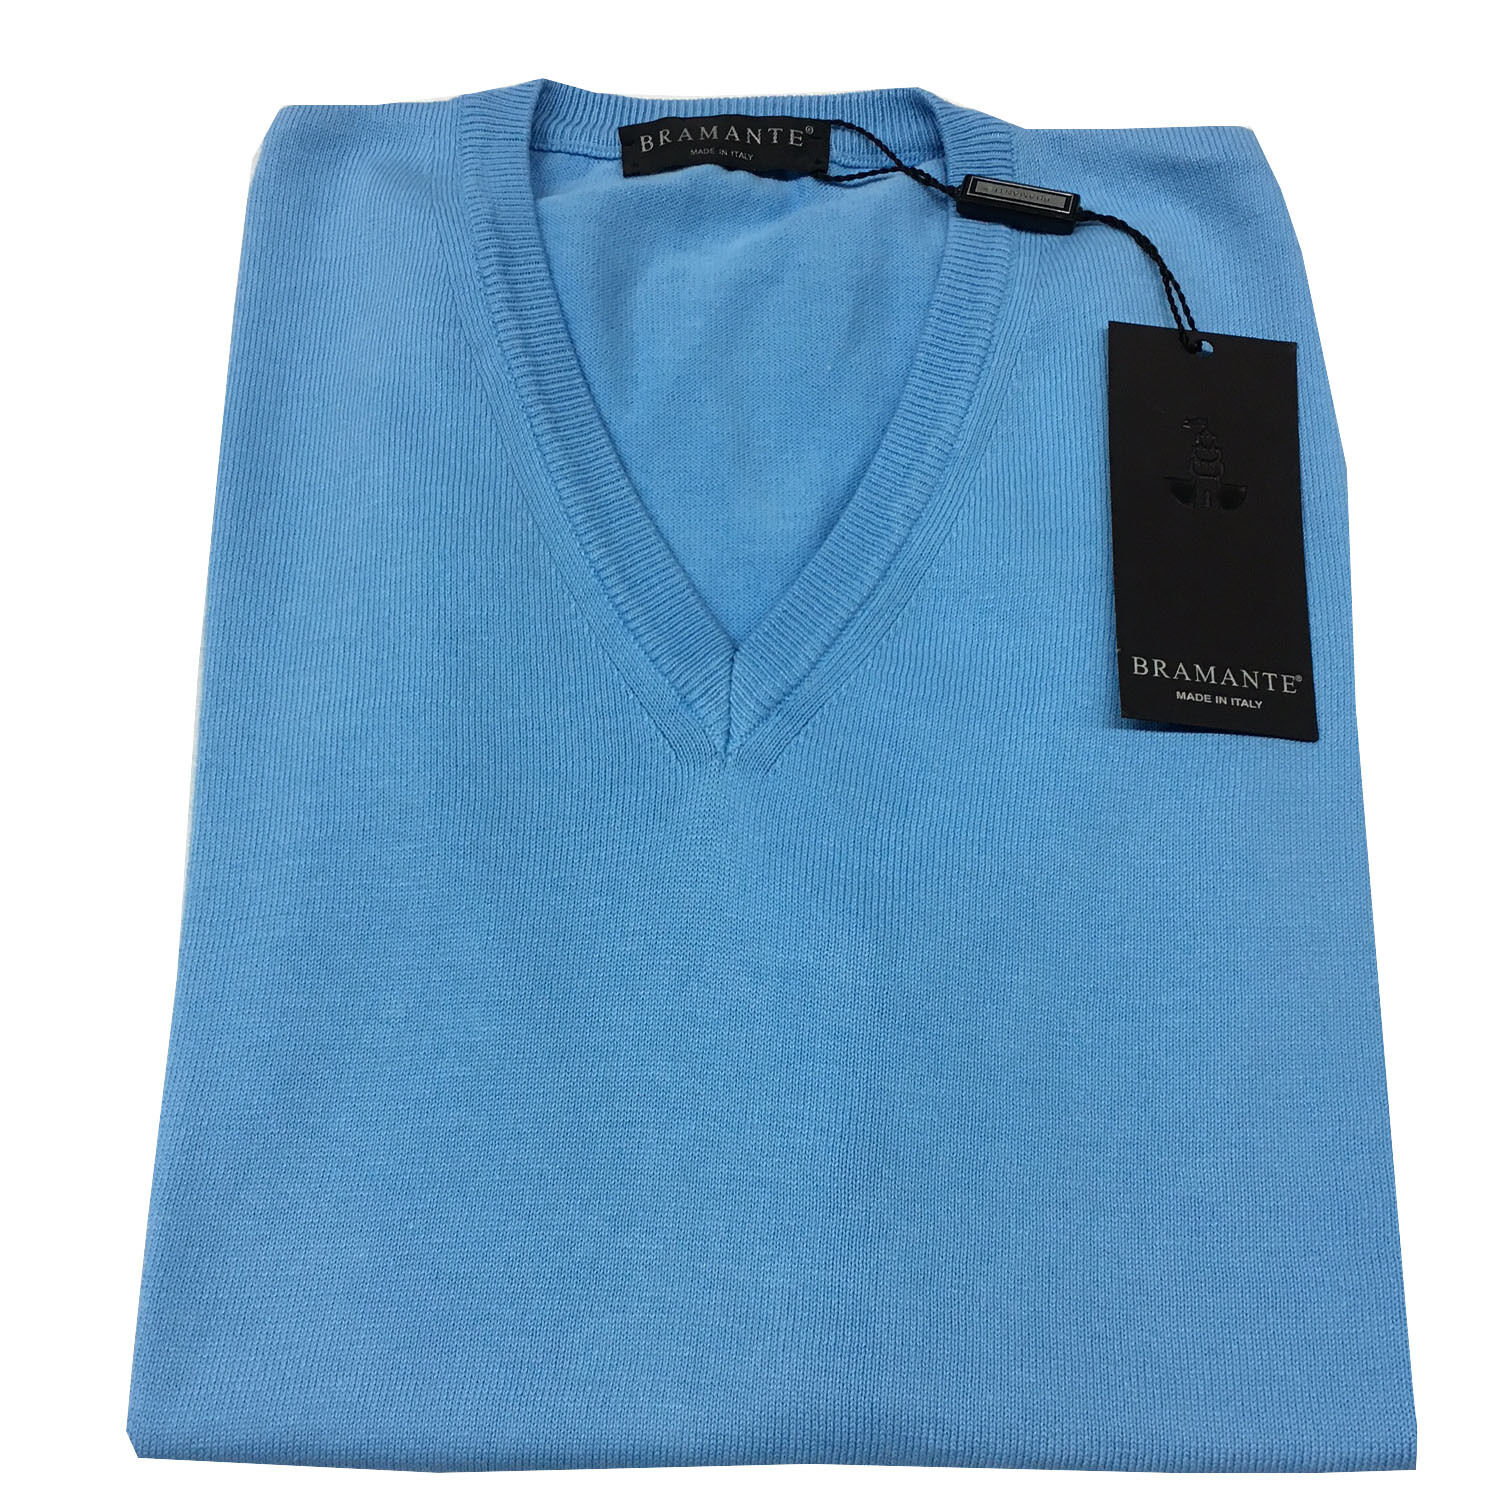 BRAMANTE vest man closed bluee 100% cotton MADE IN ITALY 46